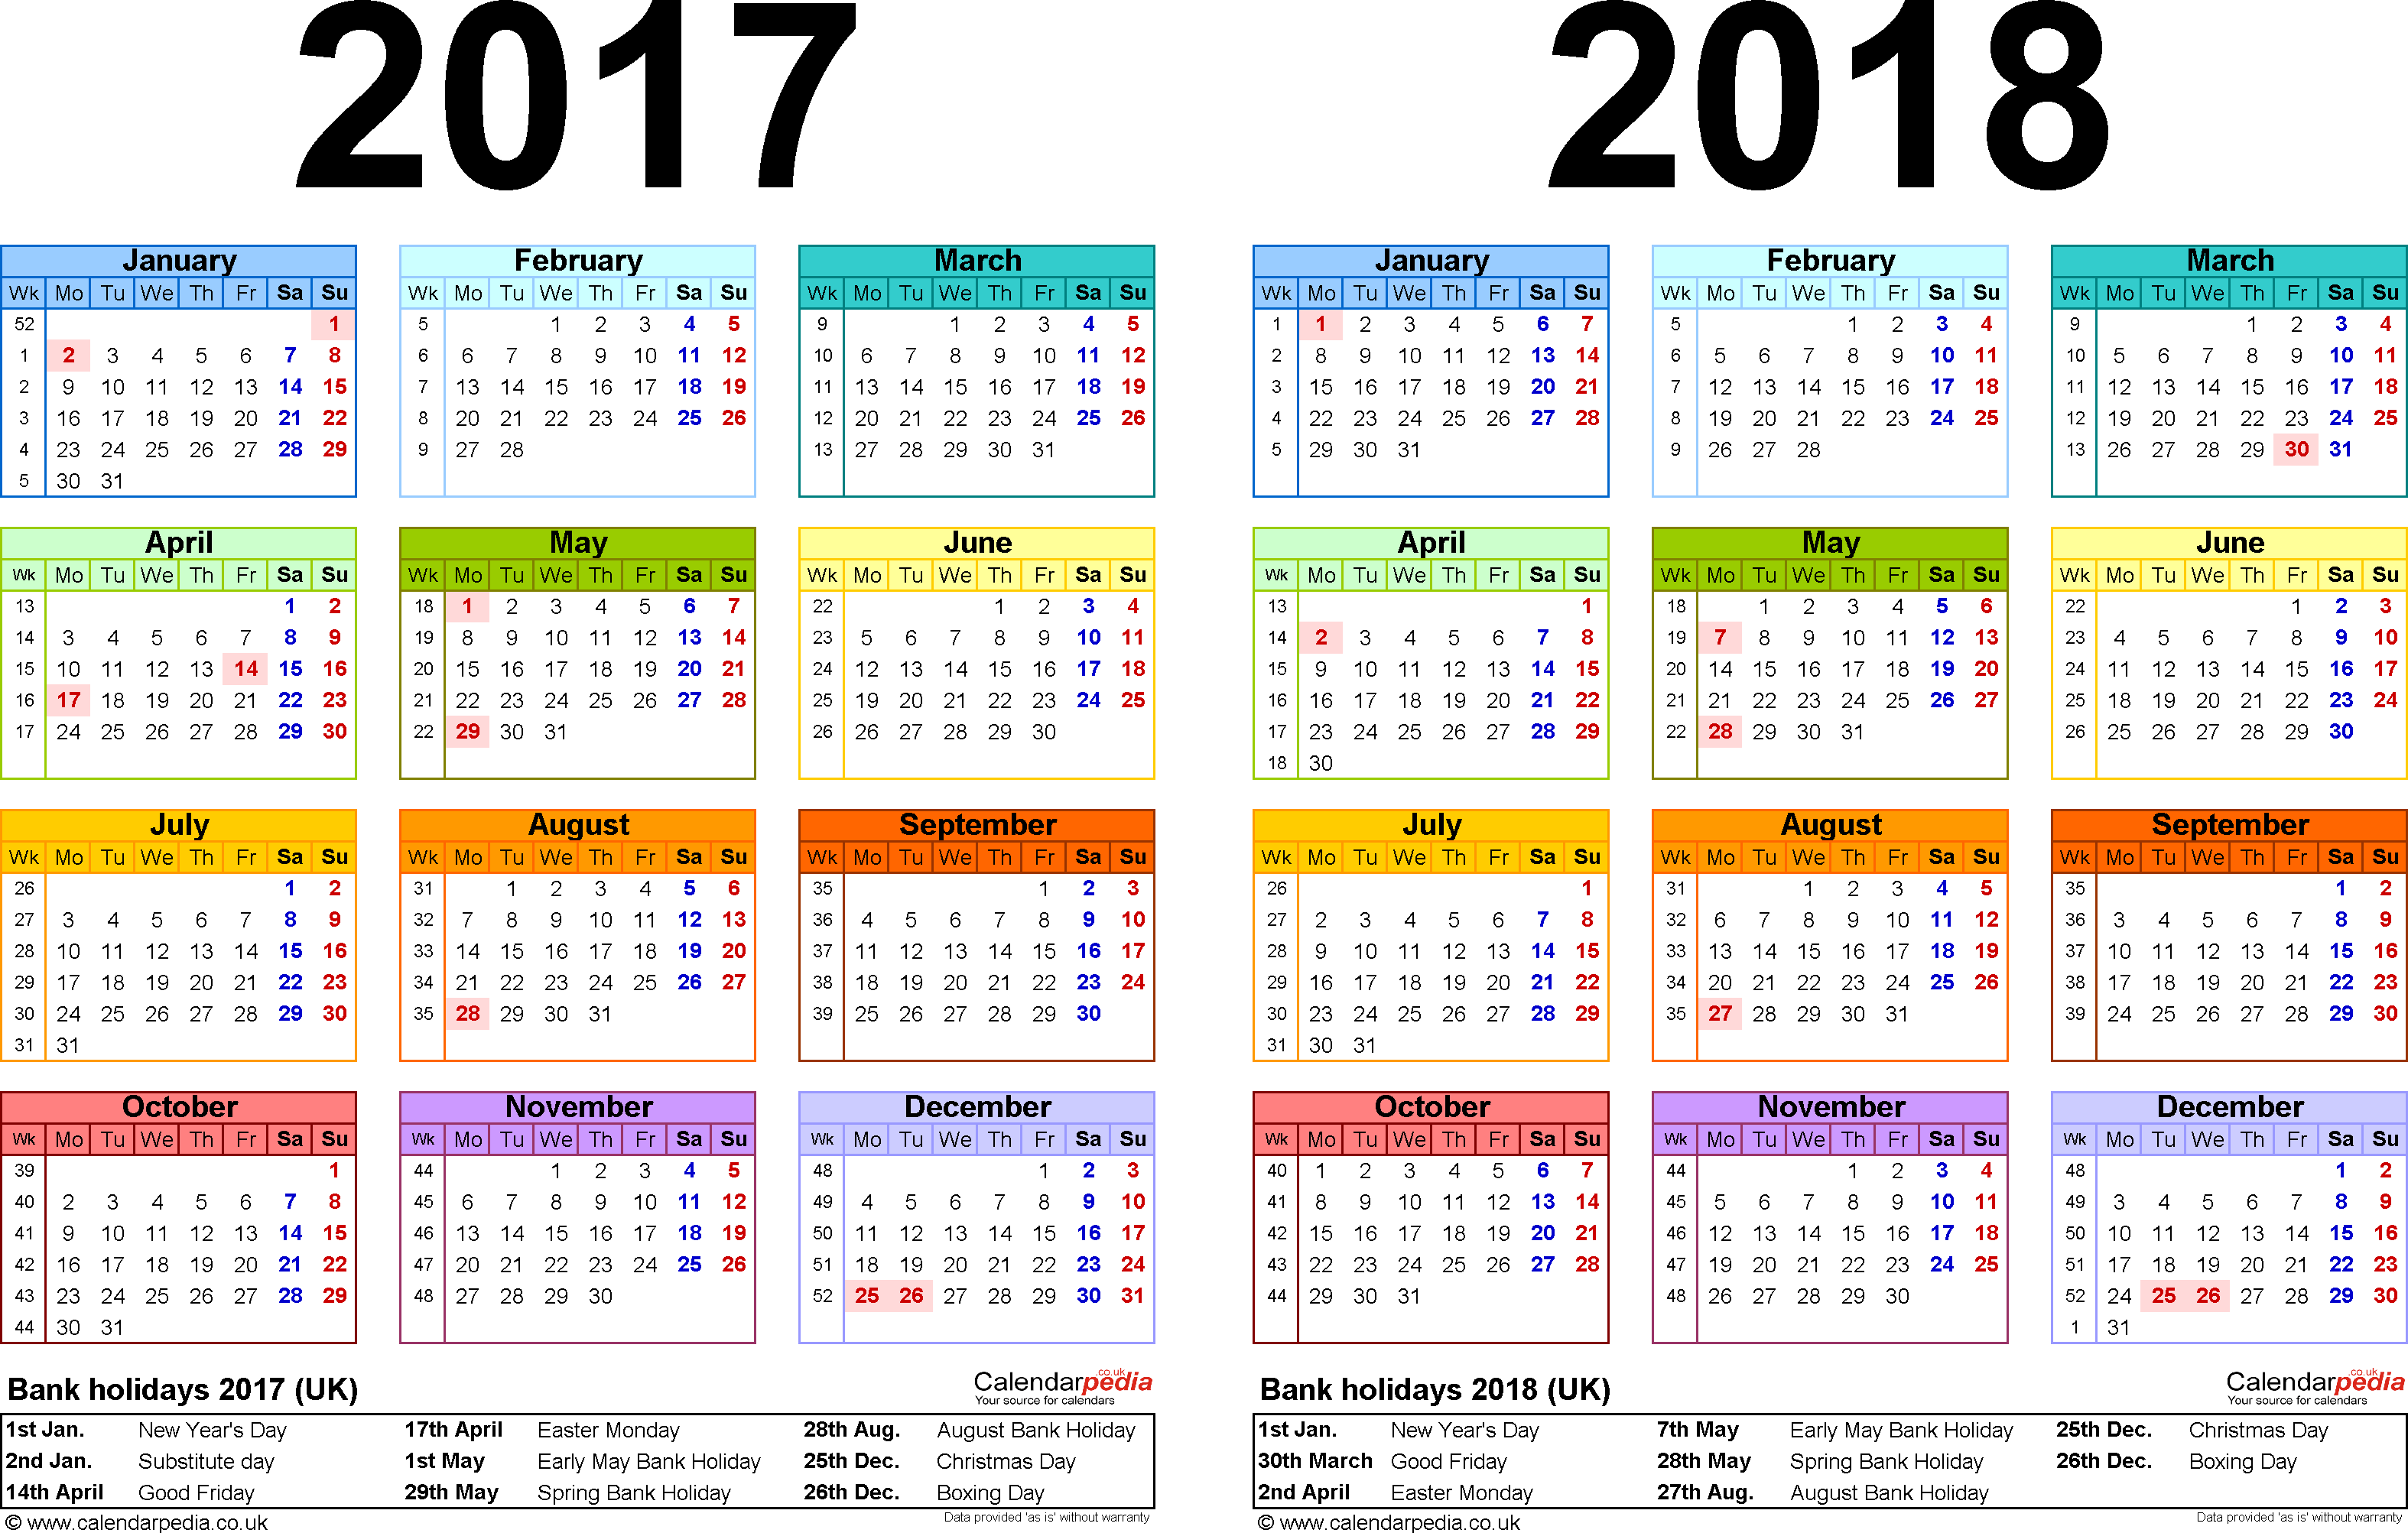 Template 1: Word template for two year calendar 2017/2018 in colour (landscape orientation, 1 page, A4)